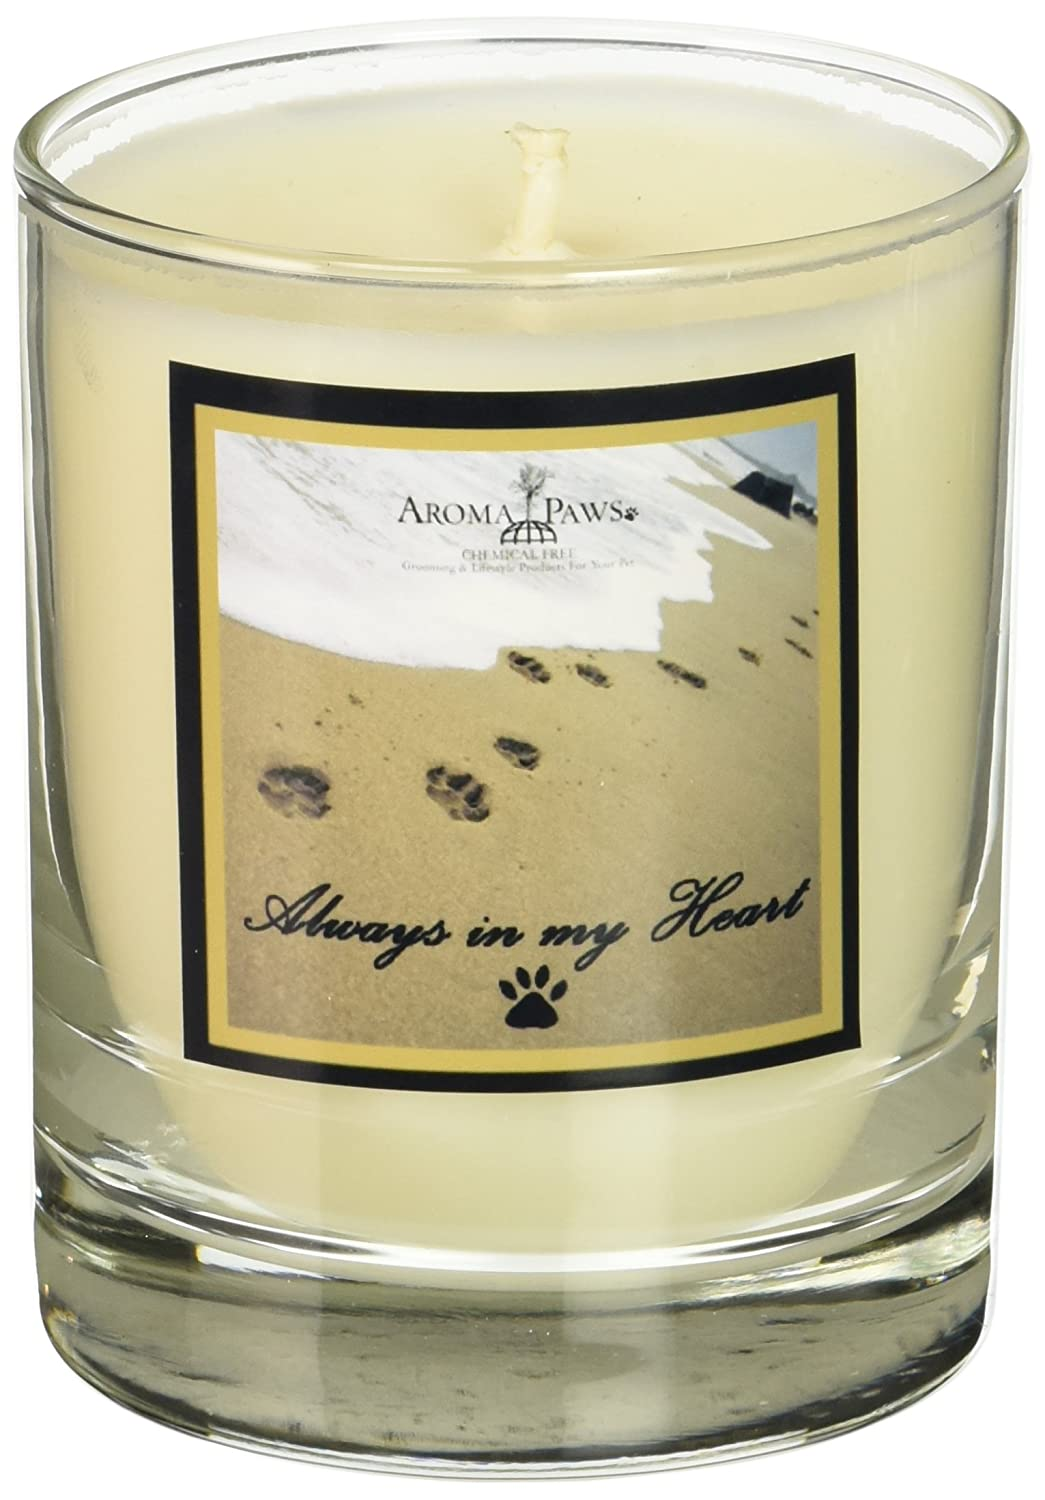 Aroma Paws Pawprints in Sand gold Memorial Candle 8-Ounce